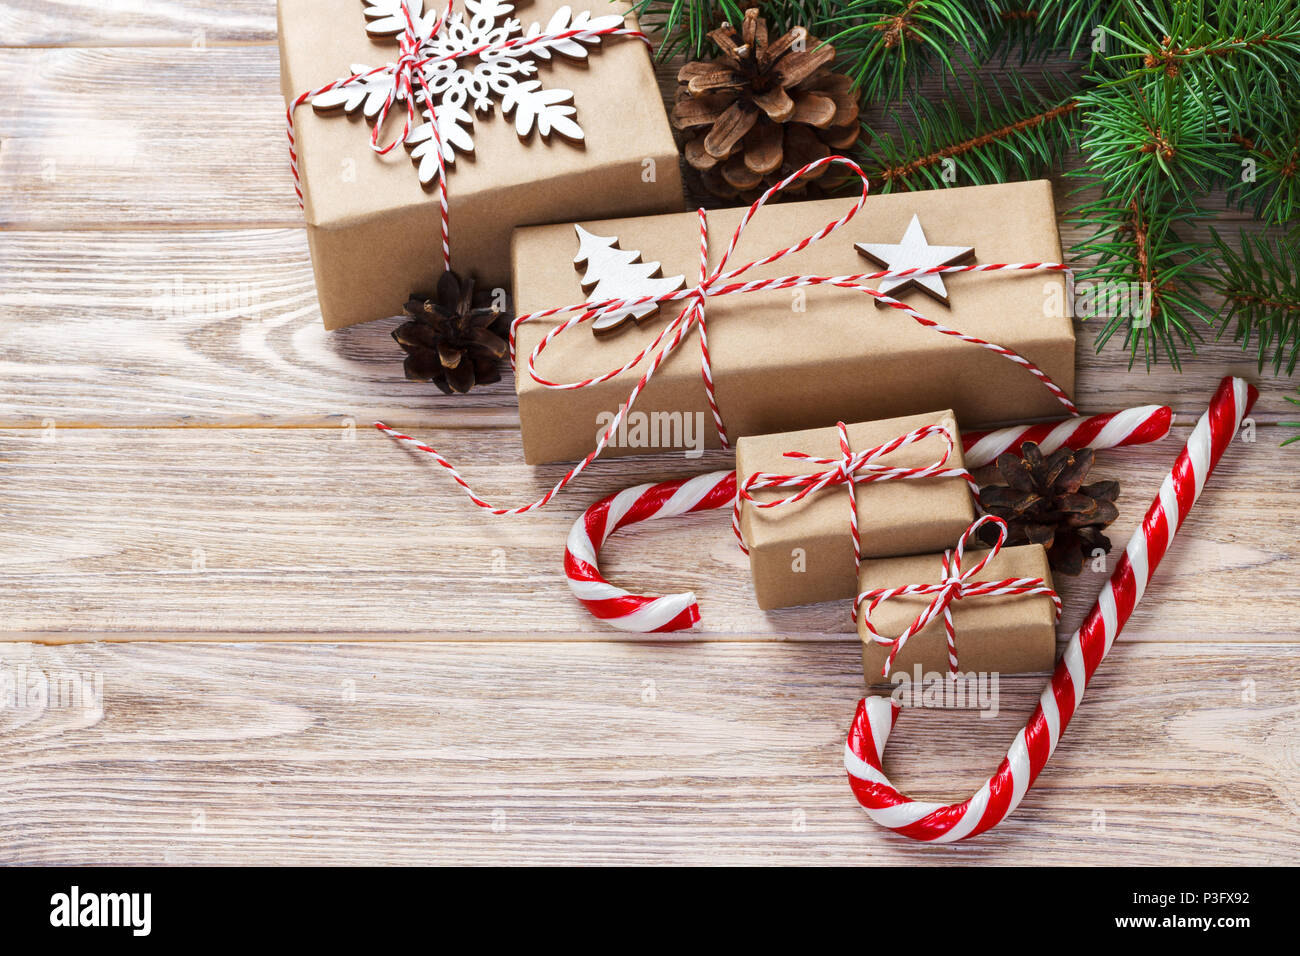 Christmas Time Concept Christmas Gifts And Traditional New Year Sweets Candy Cane On Wooden Bachground Top View Copy Space Stock Photo Alamy